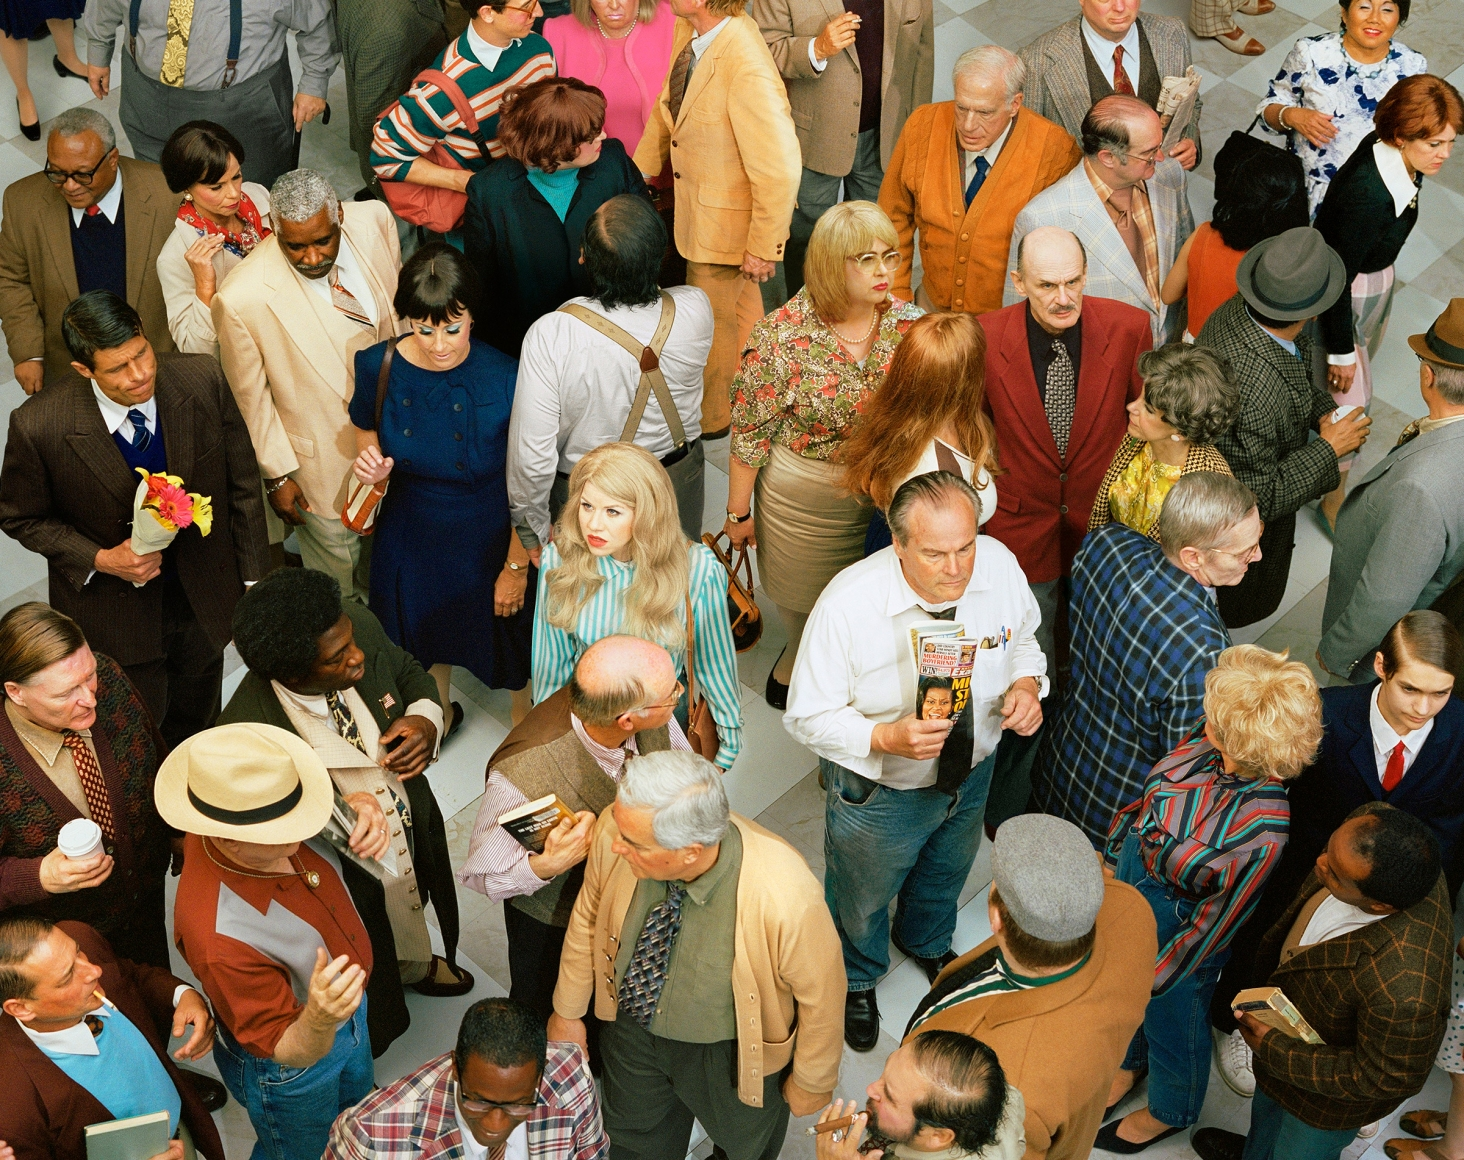 ALEX PRAGER, Crowd #4 (New Haven), 2013